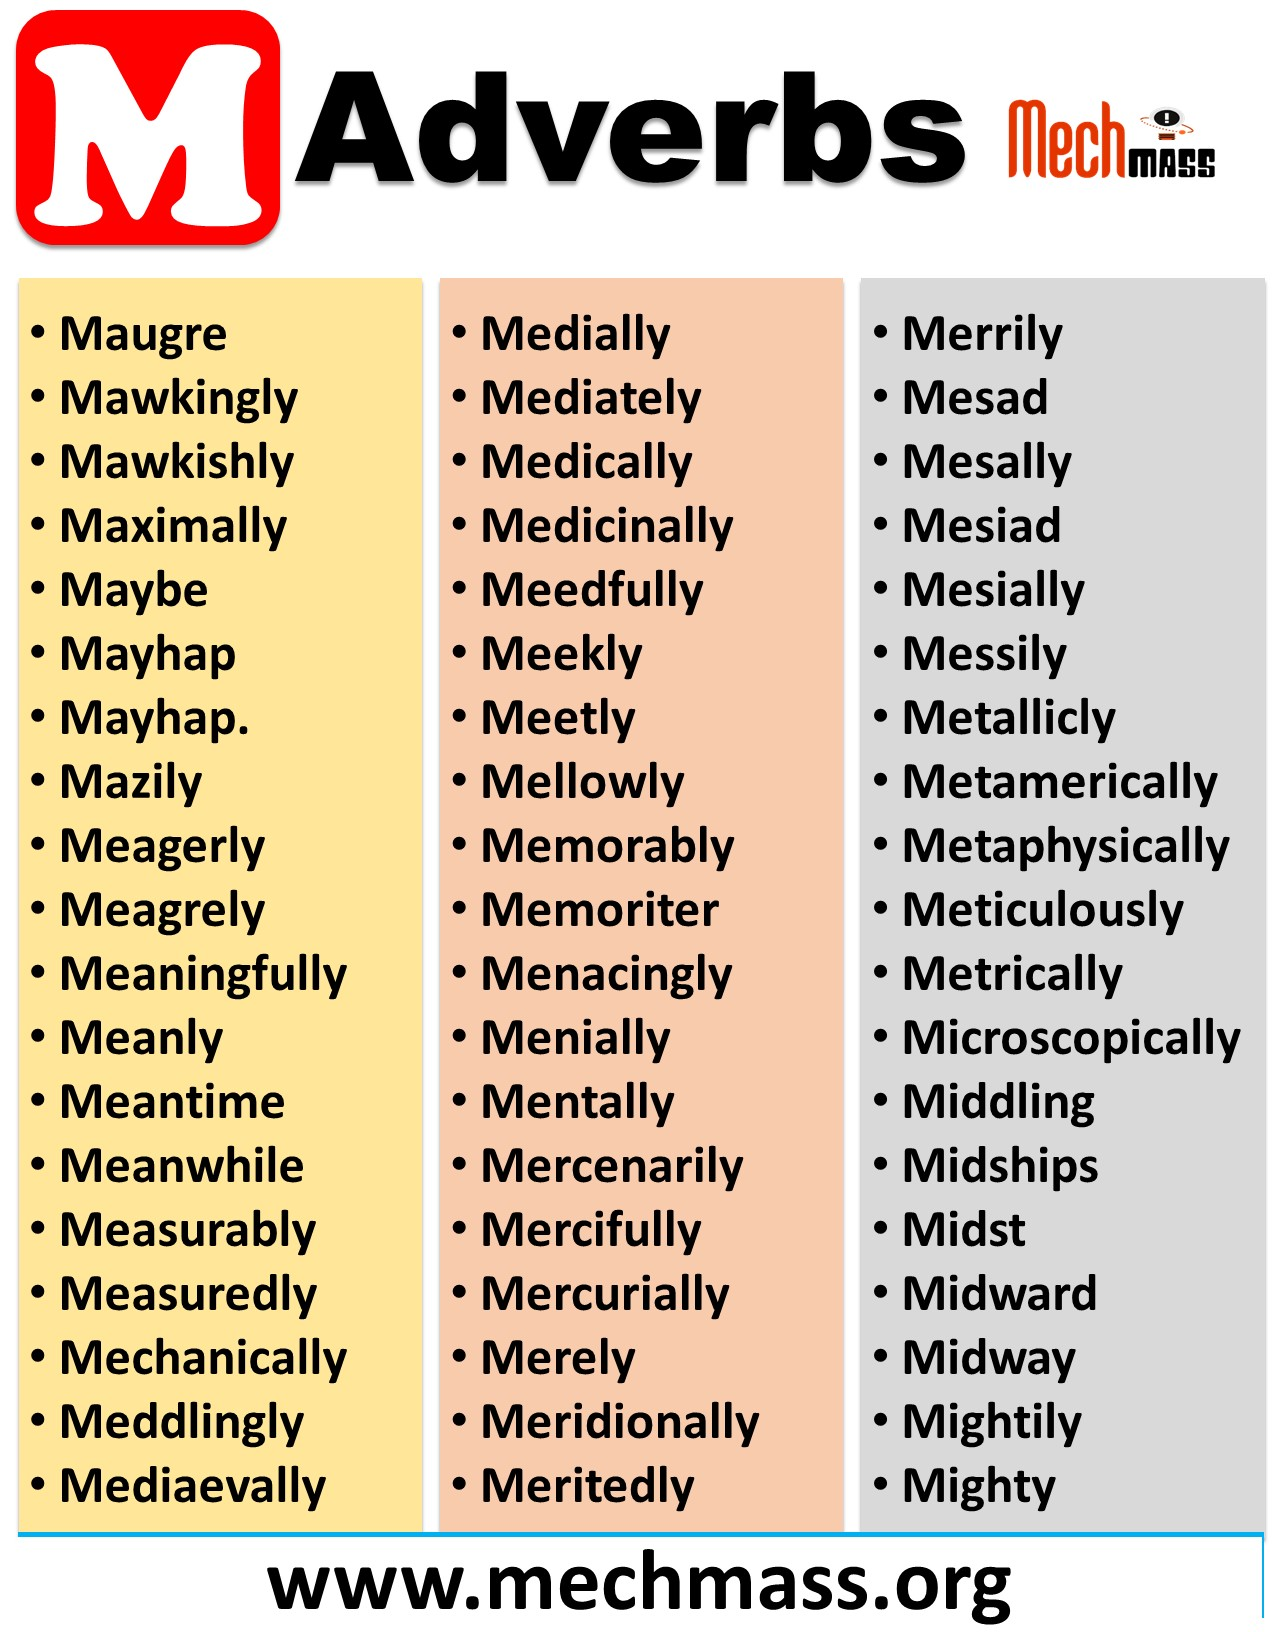 adverbs that start with m